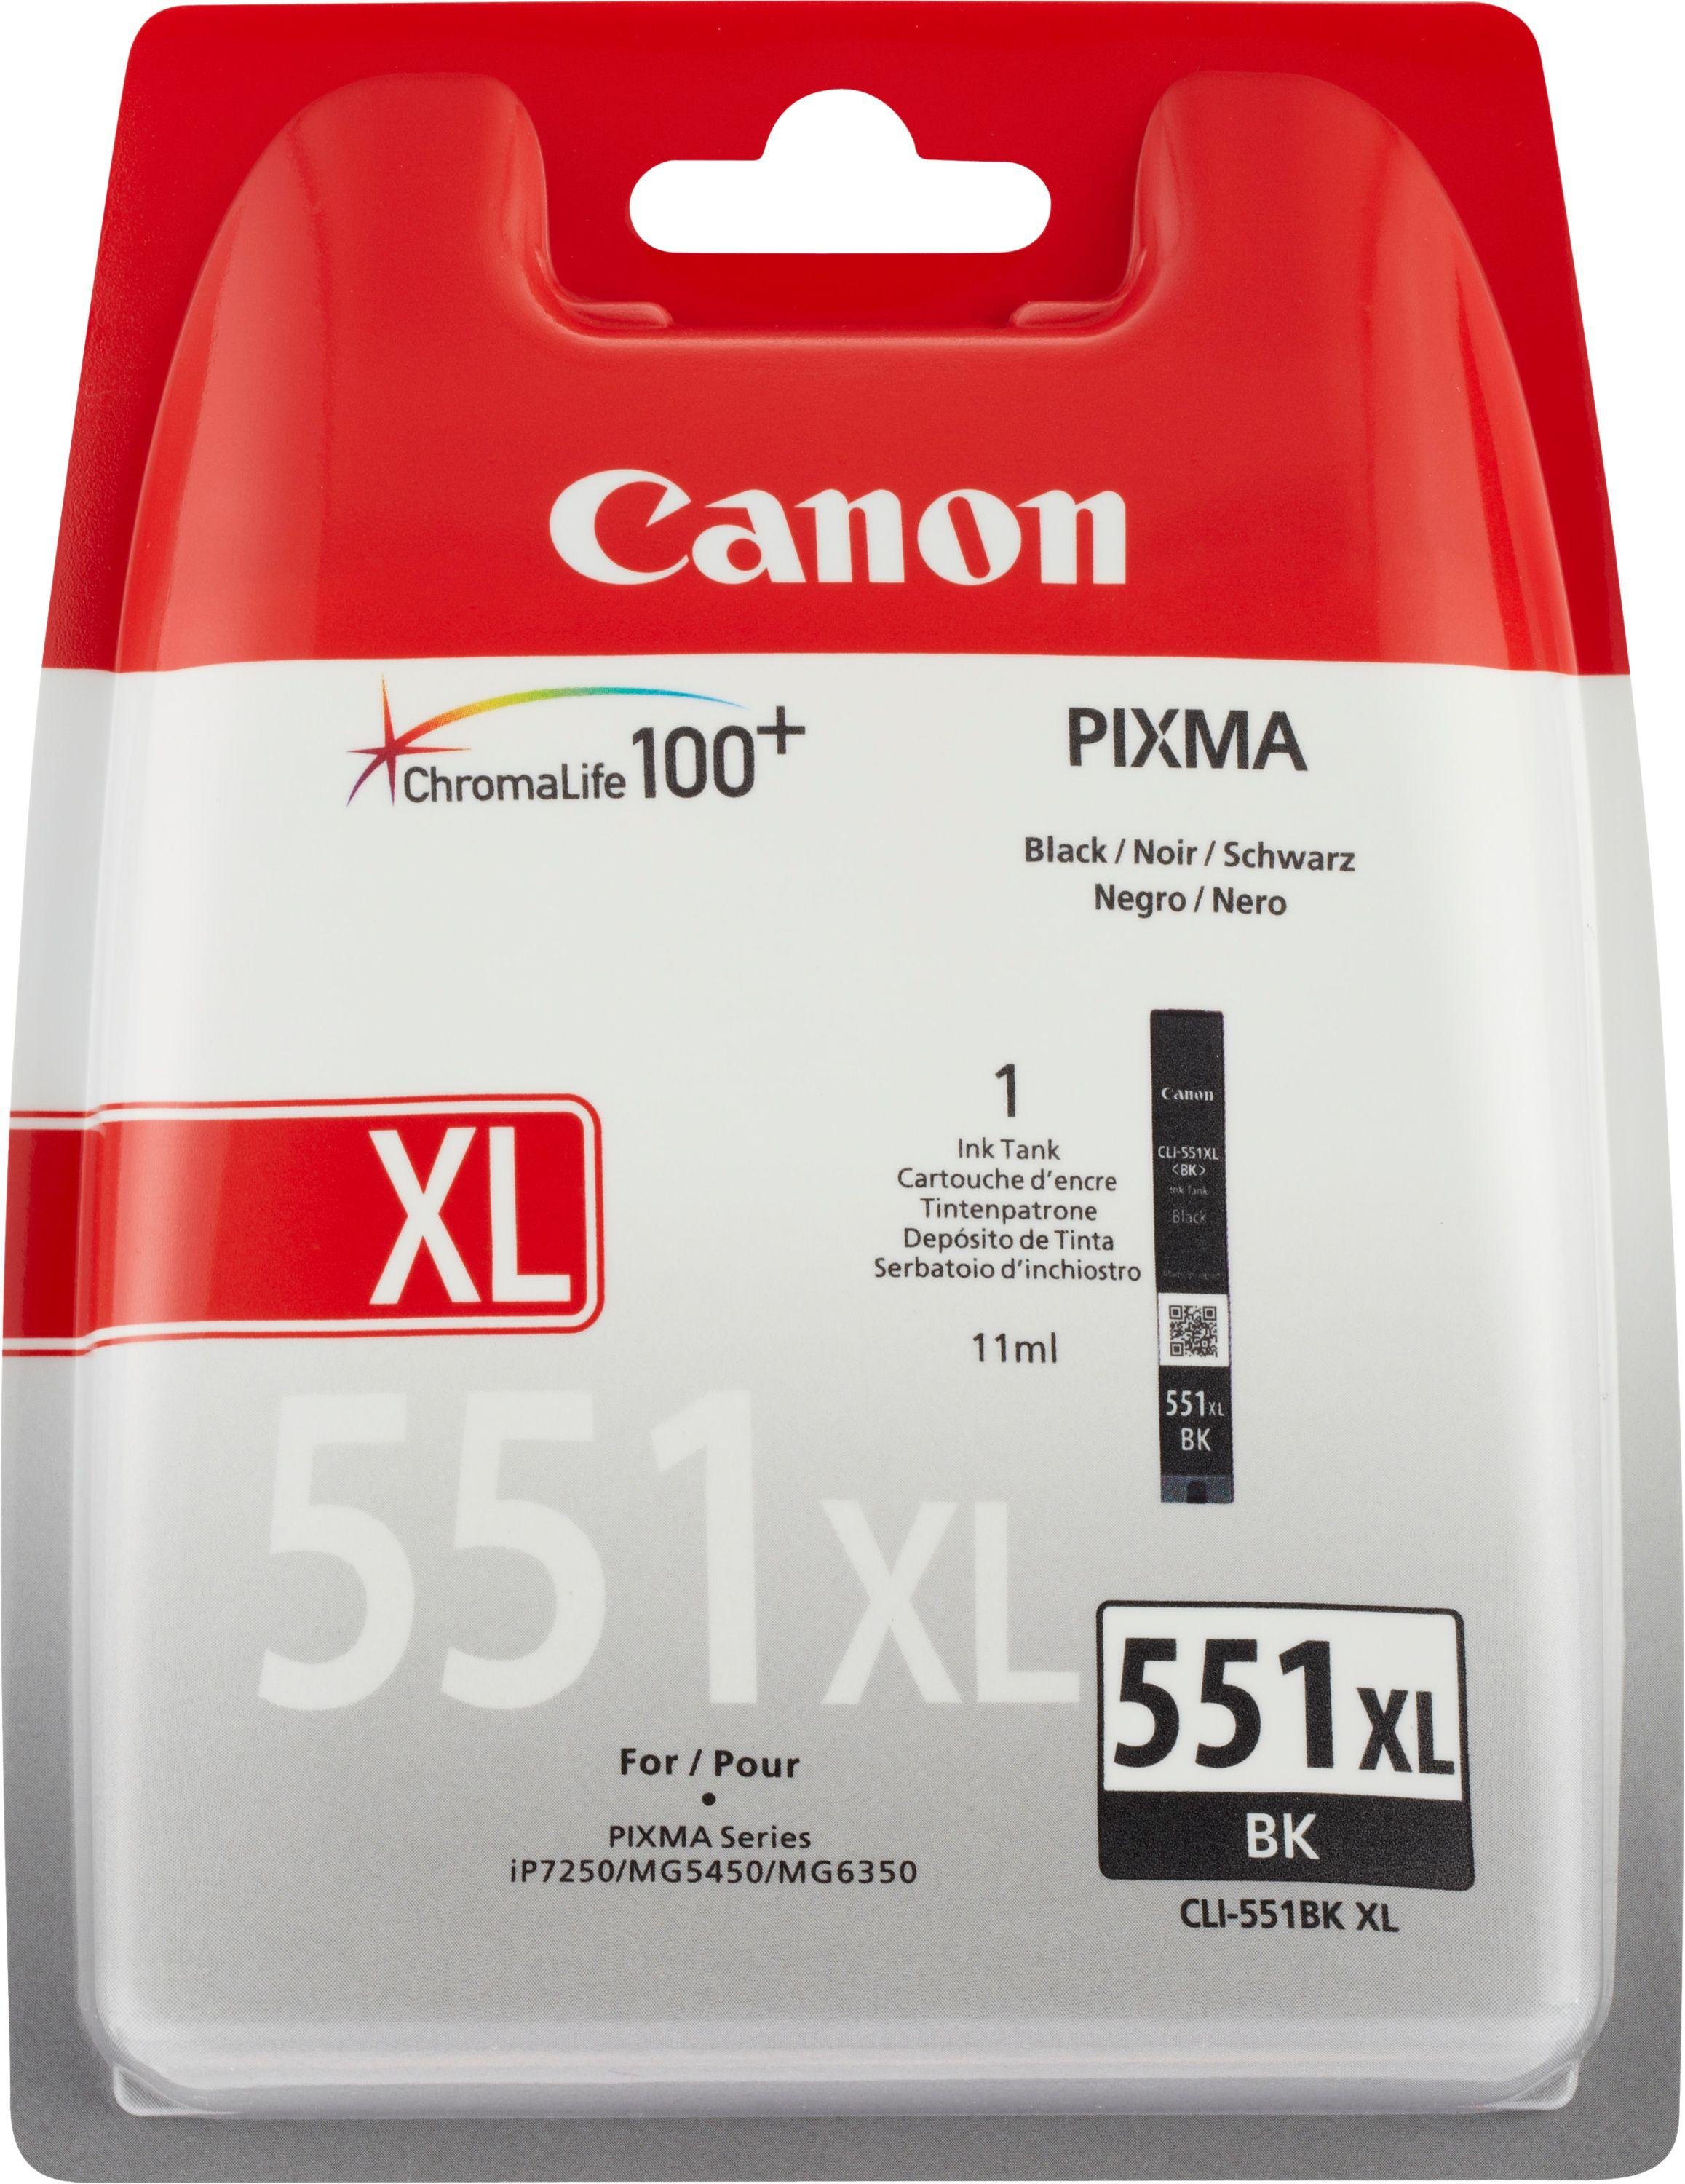 Canon CLl-551 XL Black Ink Cartridge